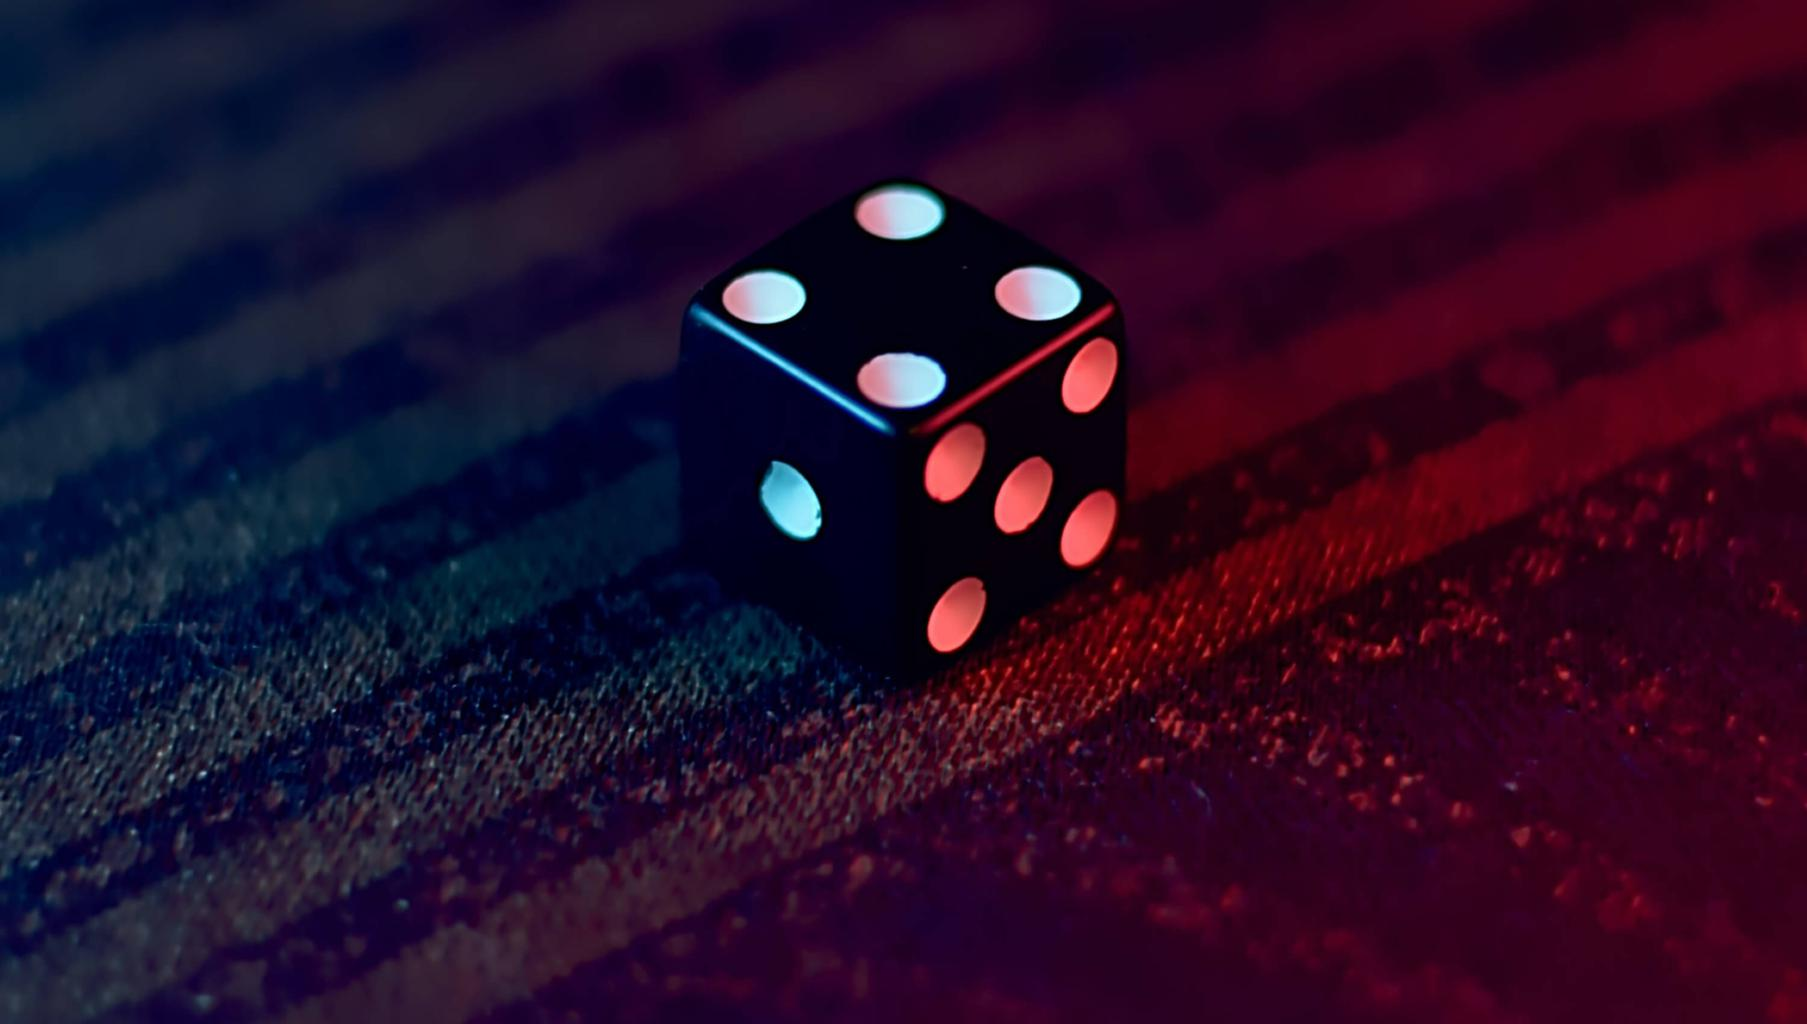 Dice on red textile. Photo by Joel Abraham on Unsplash.